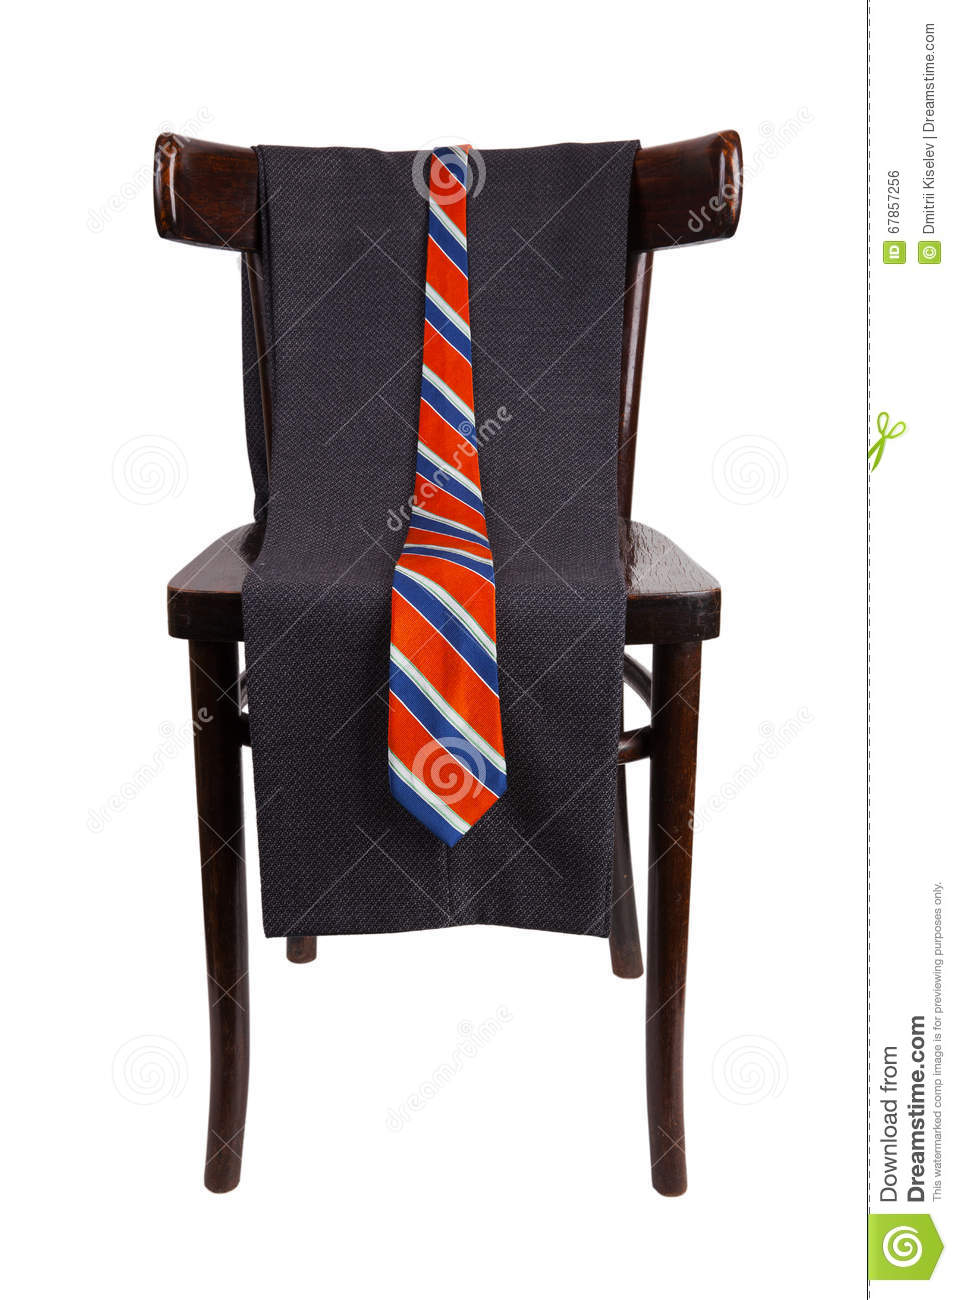 Chair Pants Pants And Tie Hanging On A Chair Stock Photo Image Of Chair